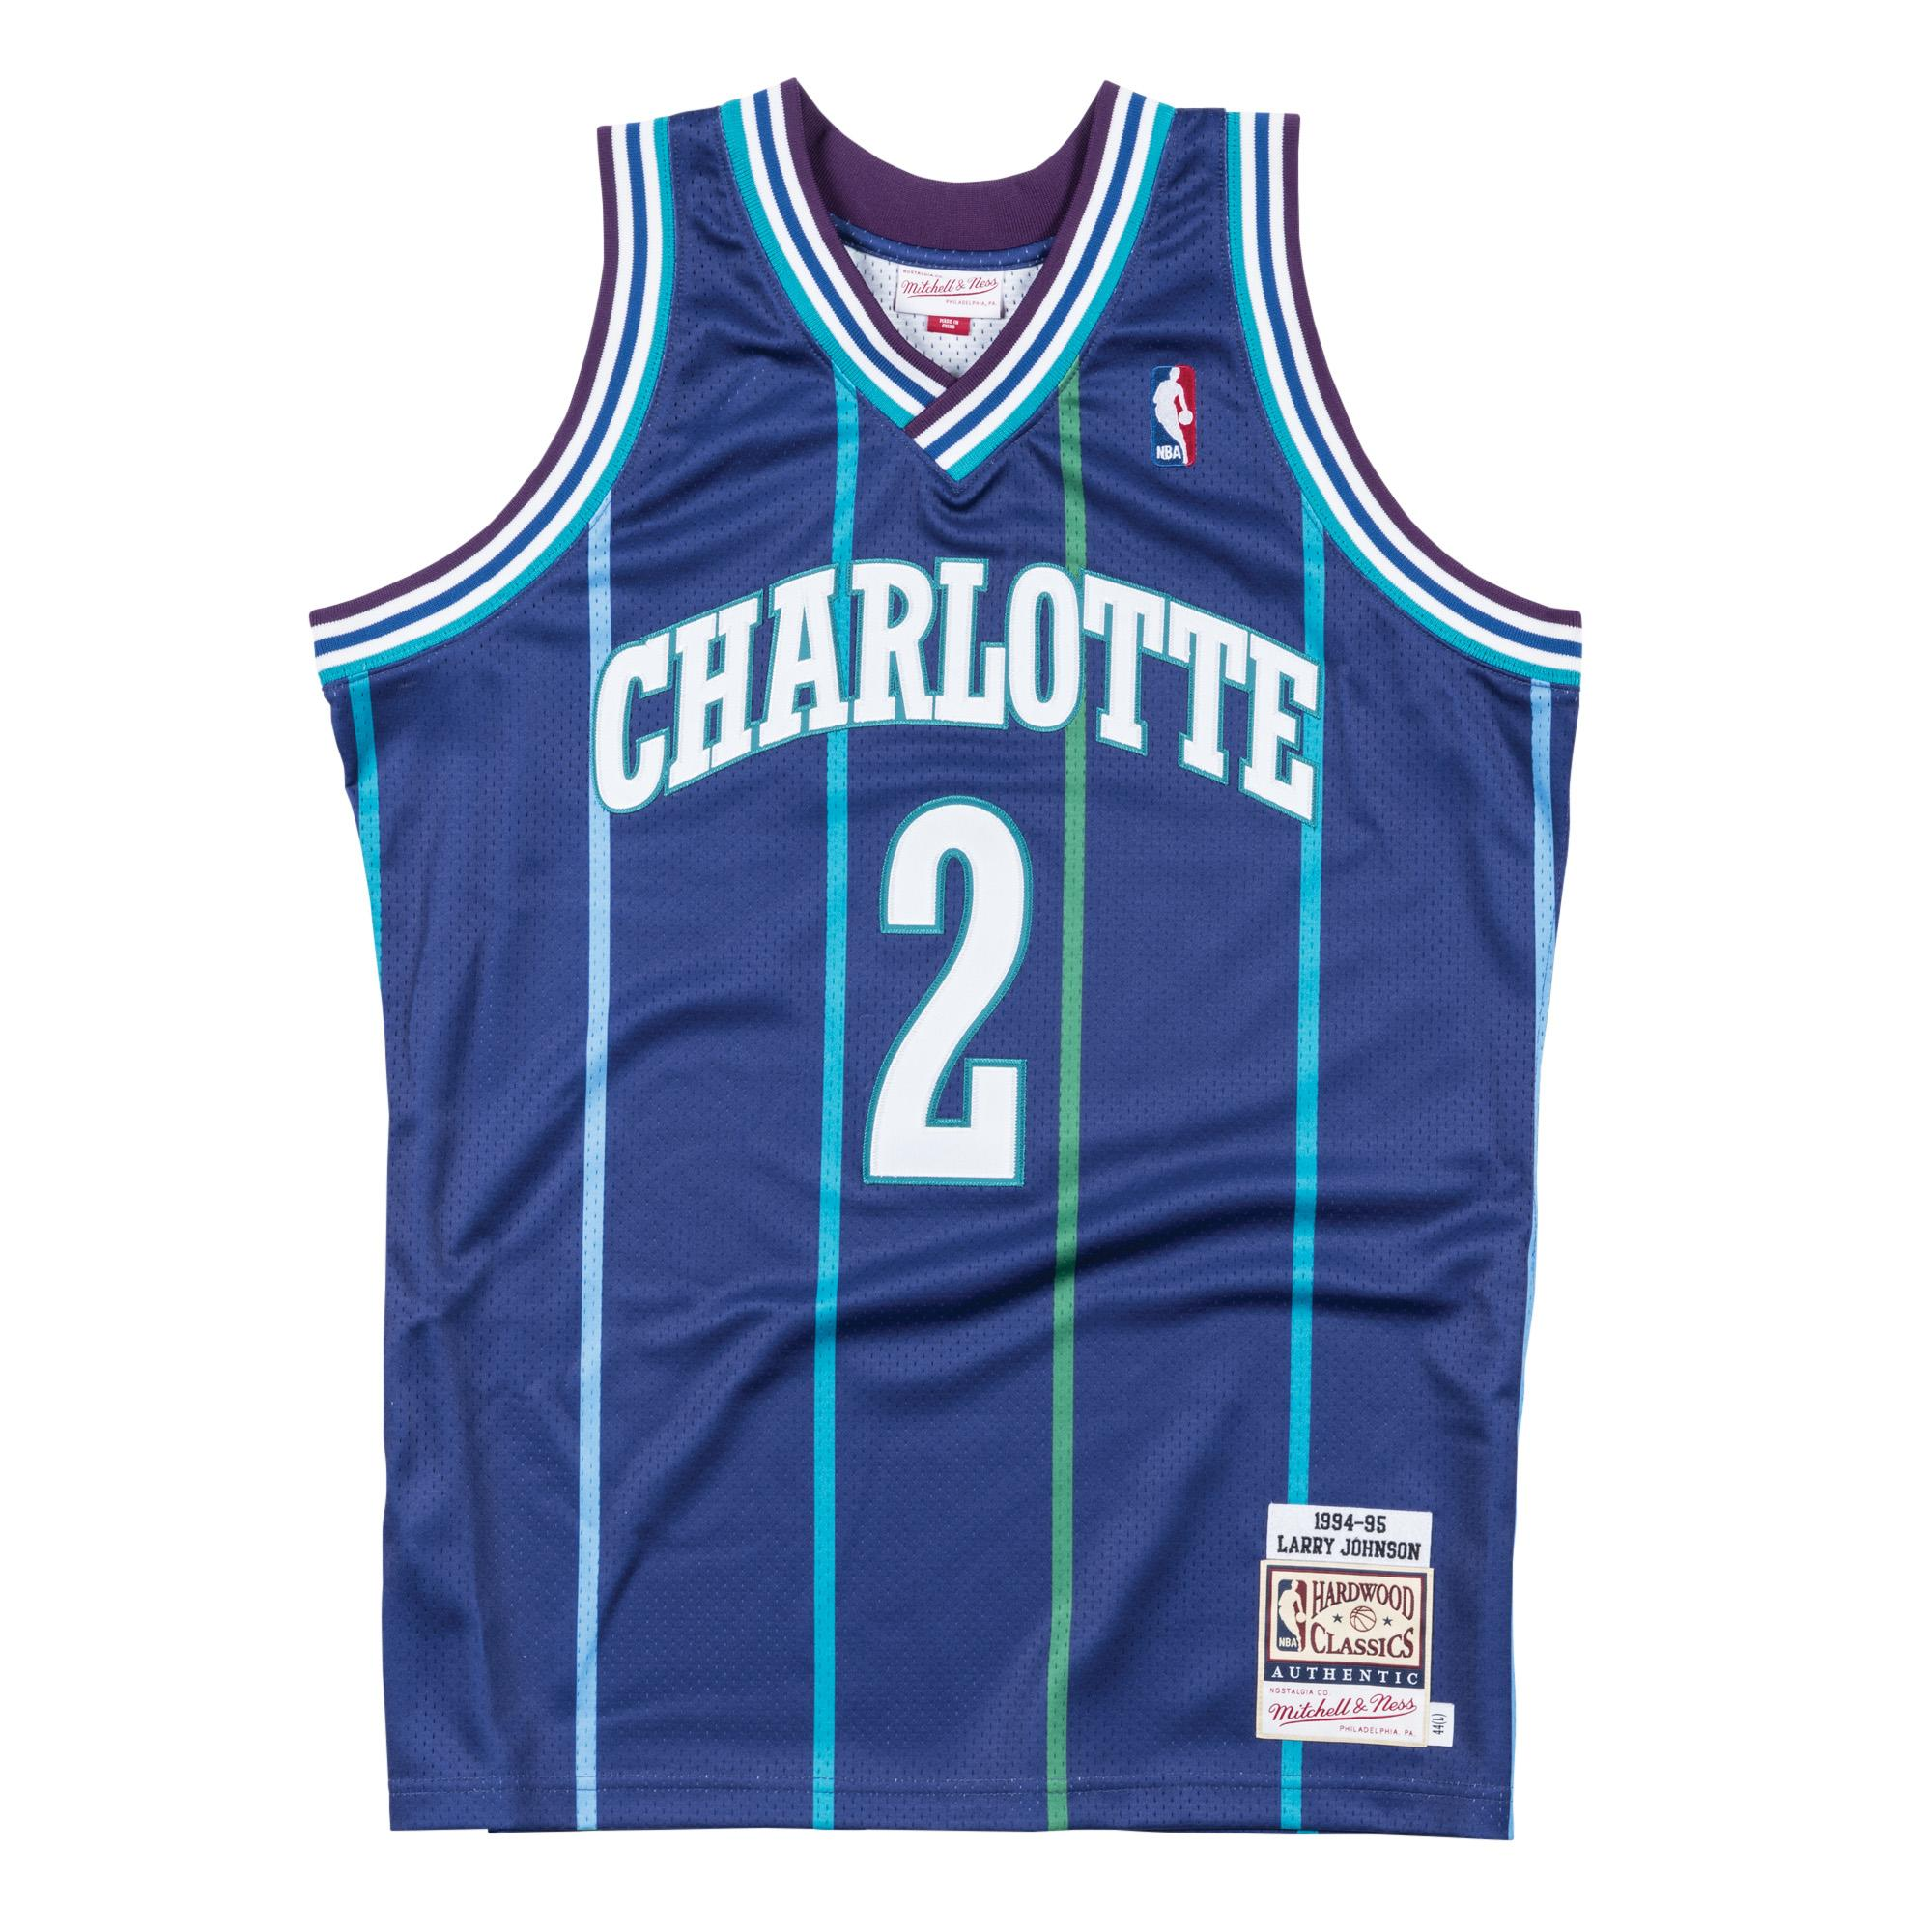 0b0dc62d960 Mitchell & Ness | Larry Johnson 1994-95 Alternate Charlotte Hornets  Authentic Jersey